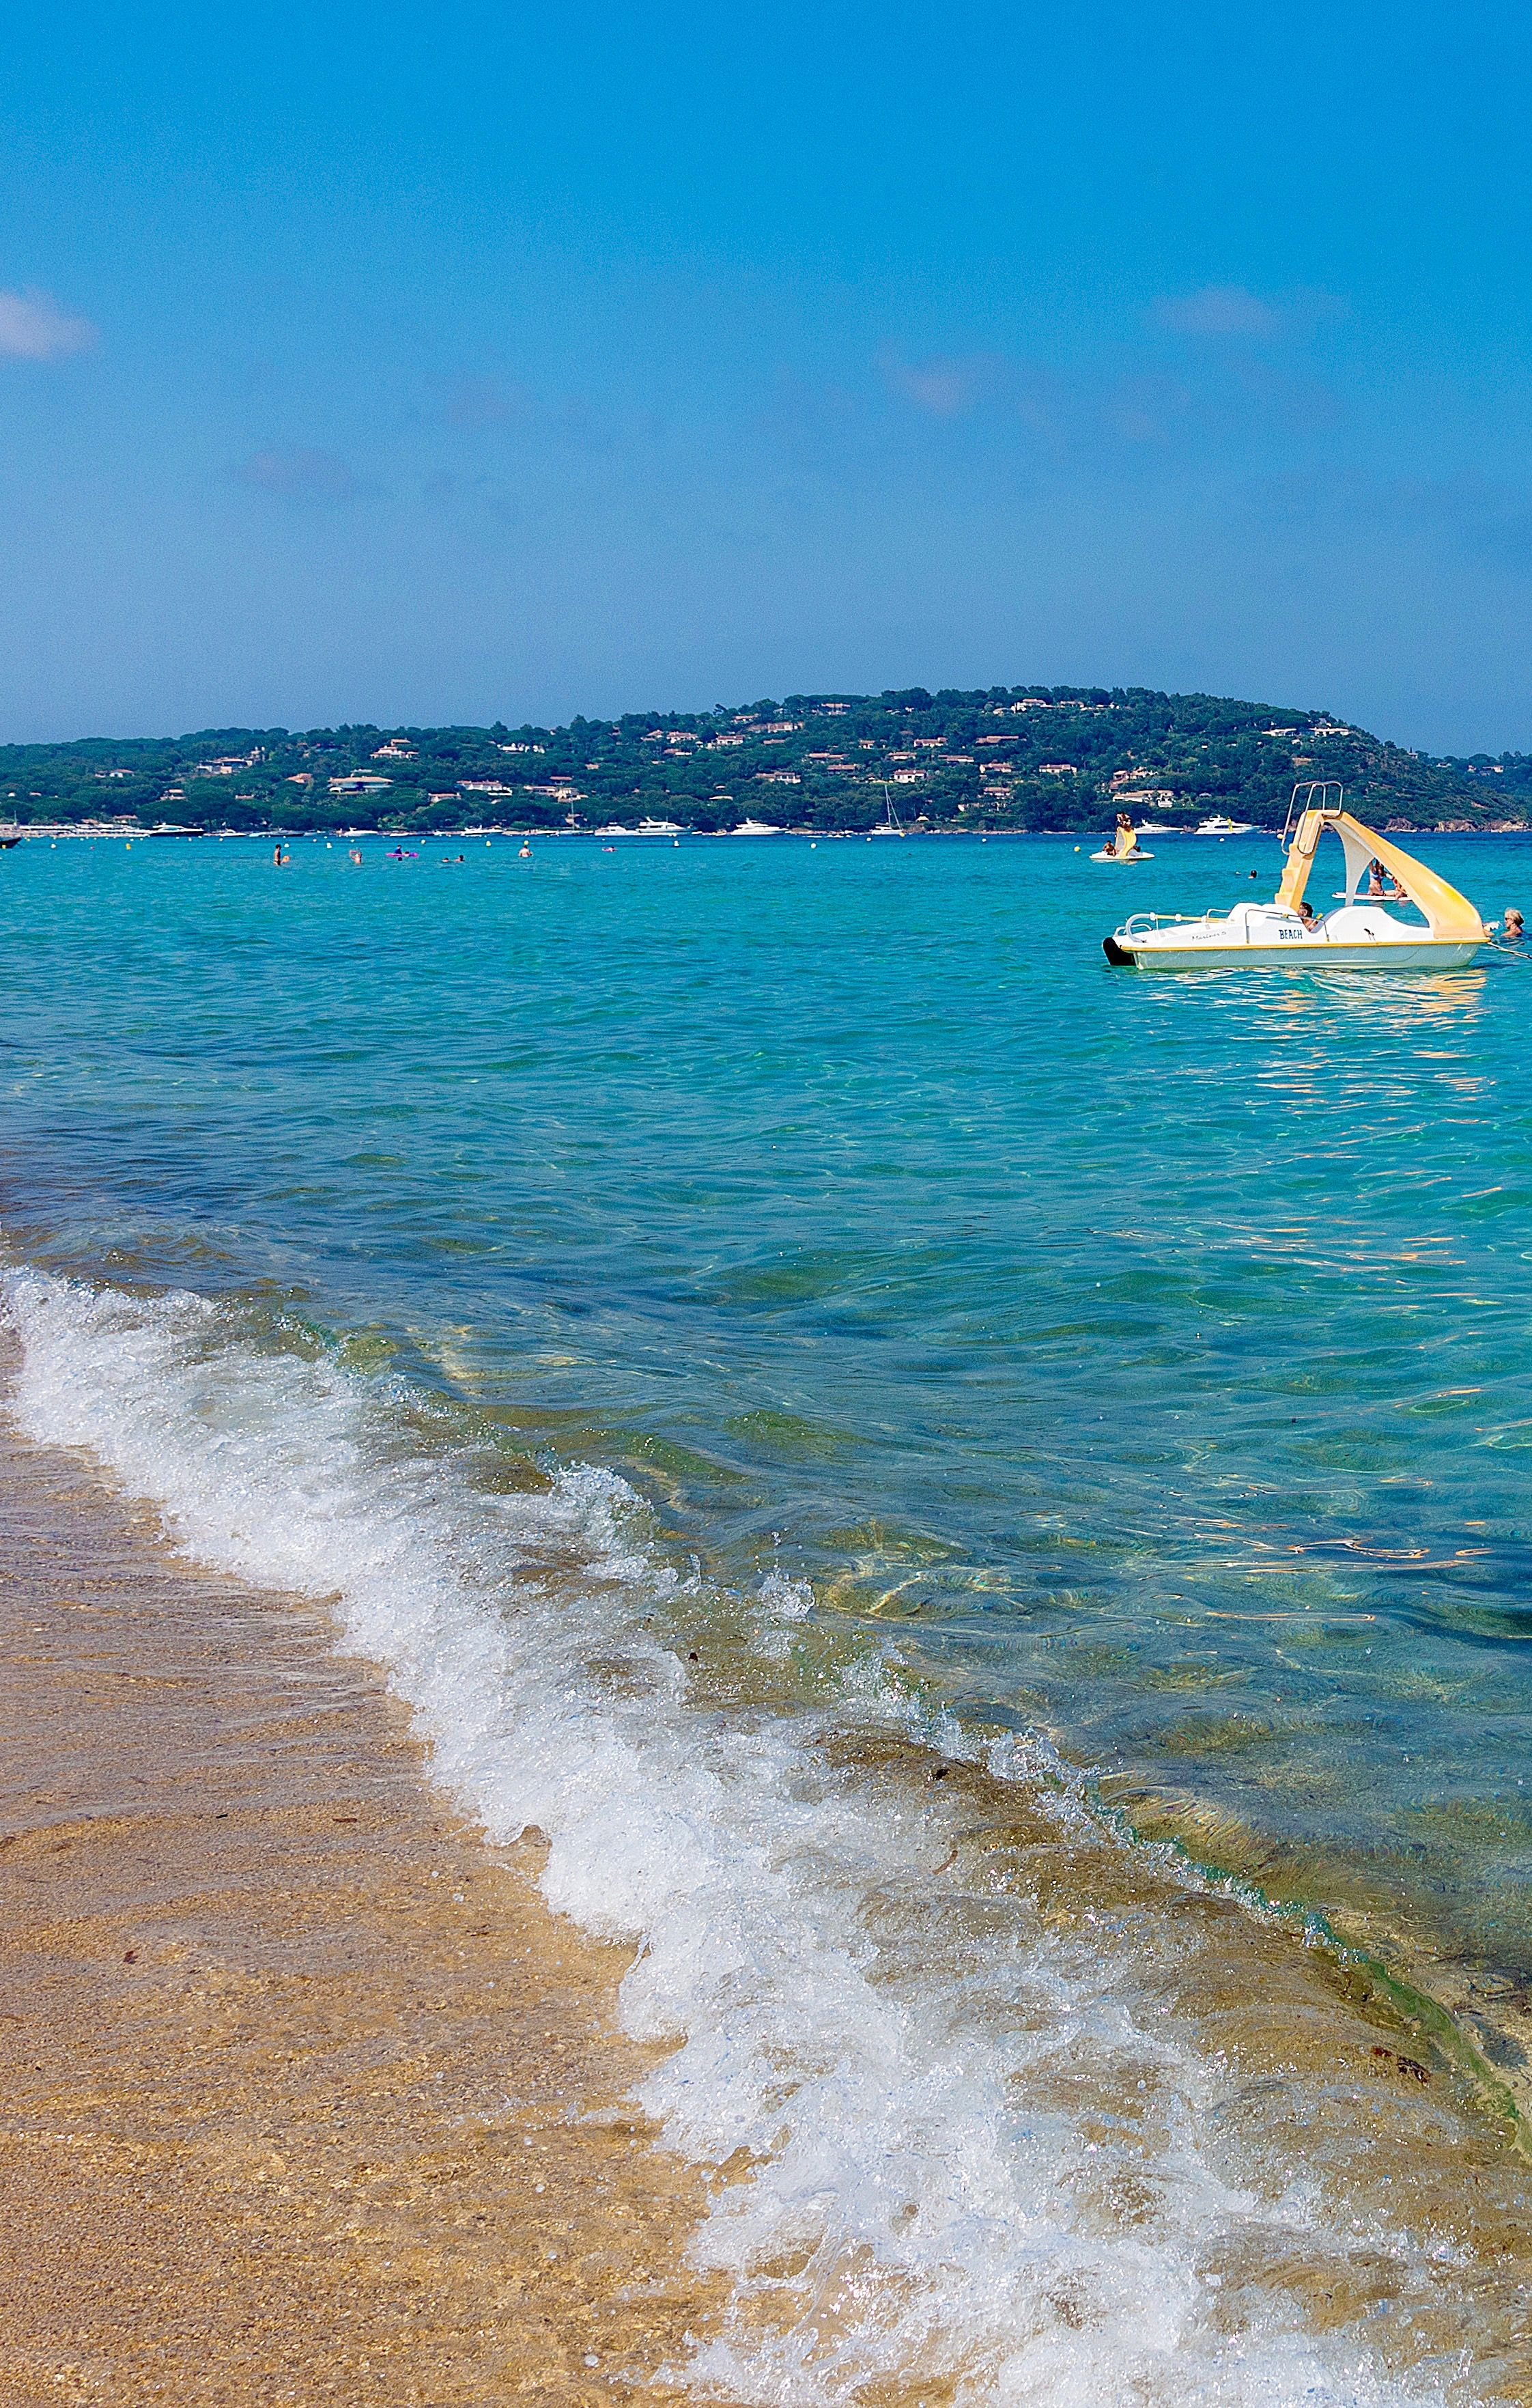 saint-tropez-french-riviera-beach-france-travel-style-38-1